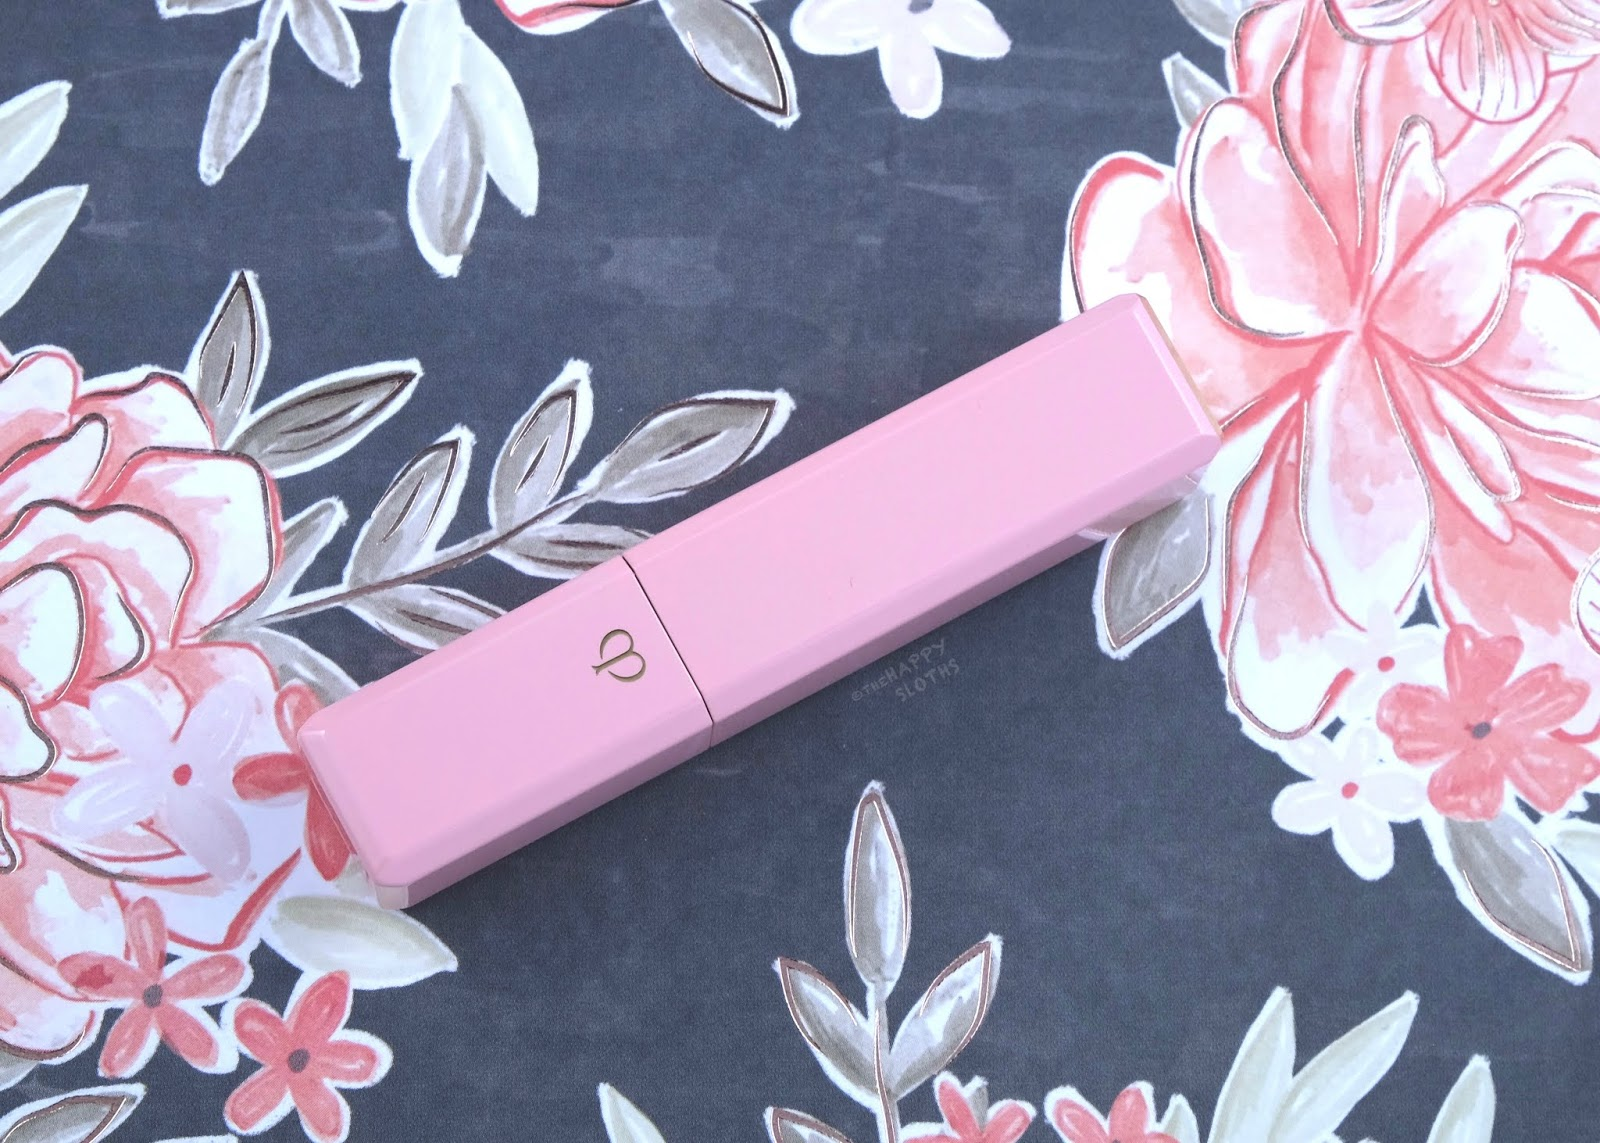 Clé de Peau | Lip Glorifier Glow Revival Conditioning Balm: Review and Swatches